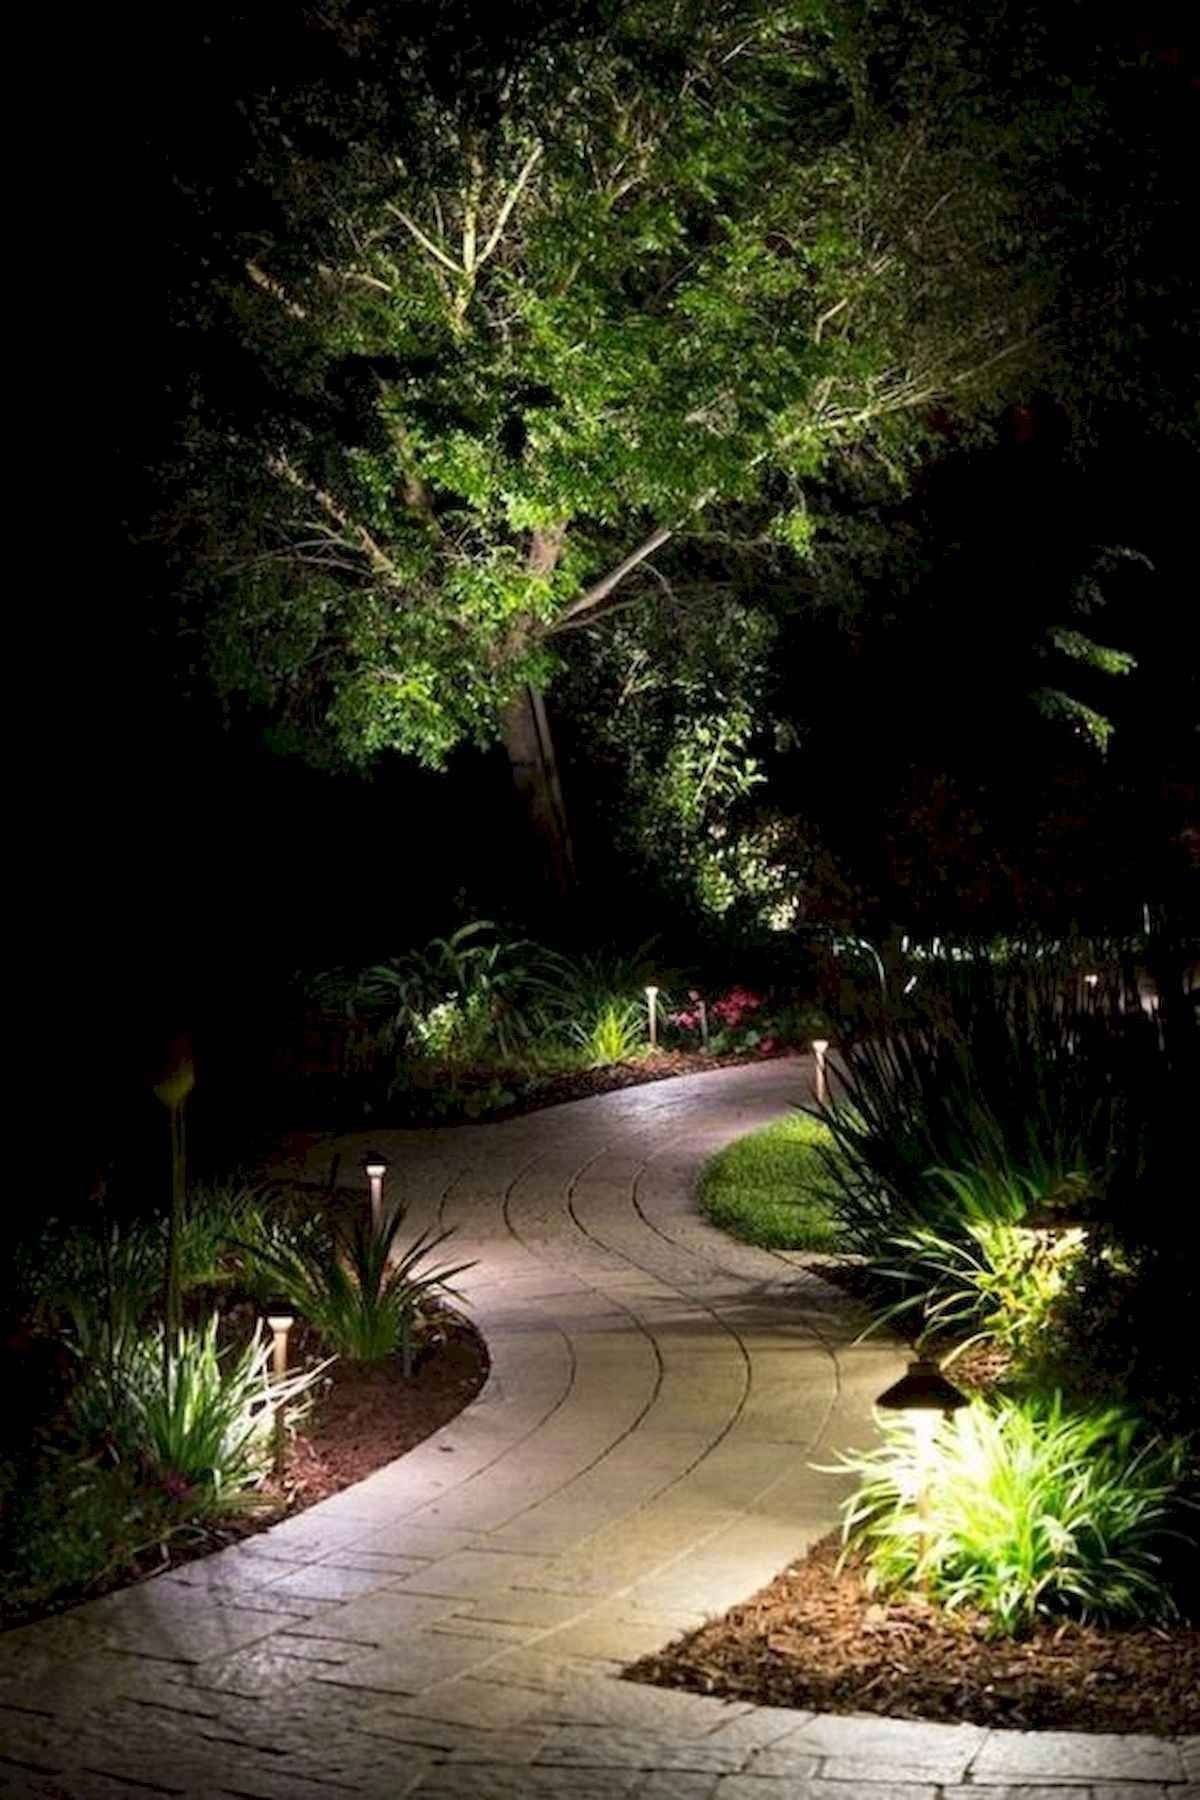 55 Stunning Garden Lighting Design Ideas And Remodel Garden 55 Stunning Garden Lighting Design I 2020 Belysning Tradgard Tradgardsarbete Baksida Landskapsdesign